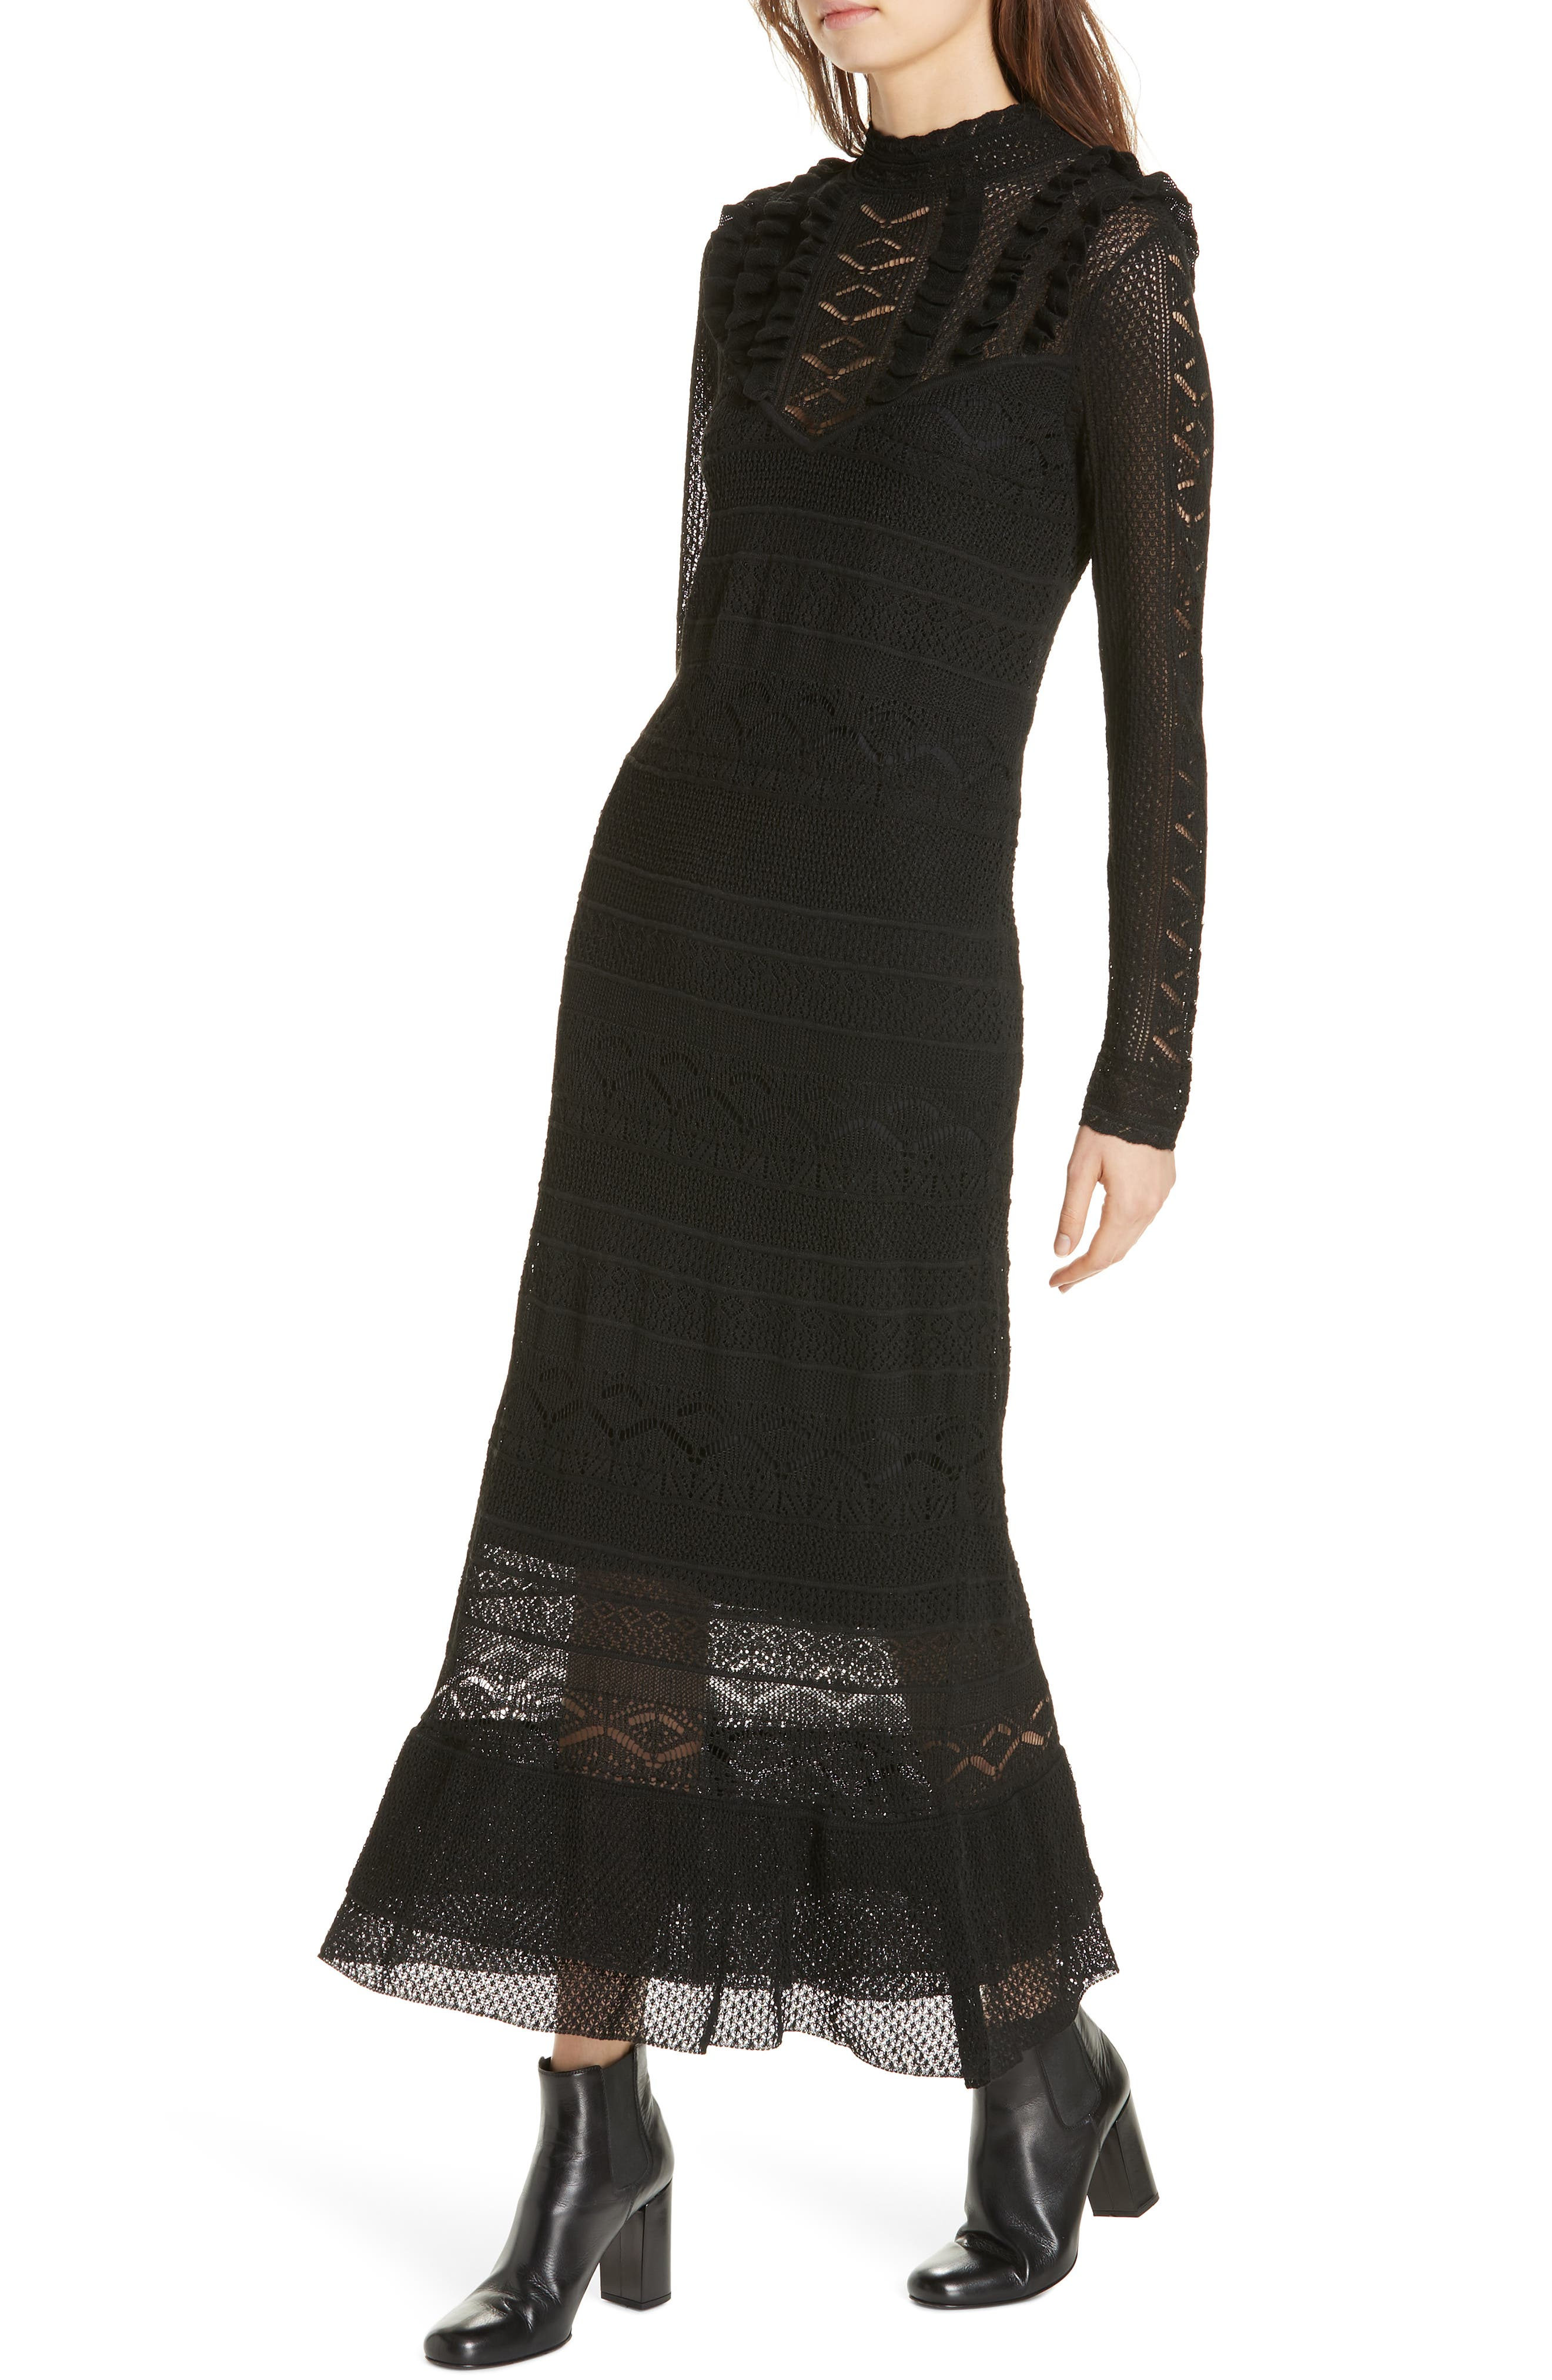 Pointelle Lace Midi Dress,                             Alternate thumbnail 4, color,                             001